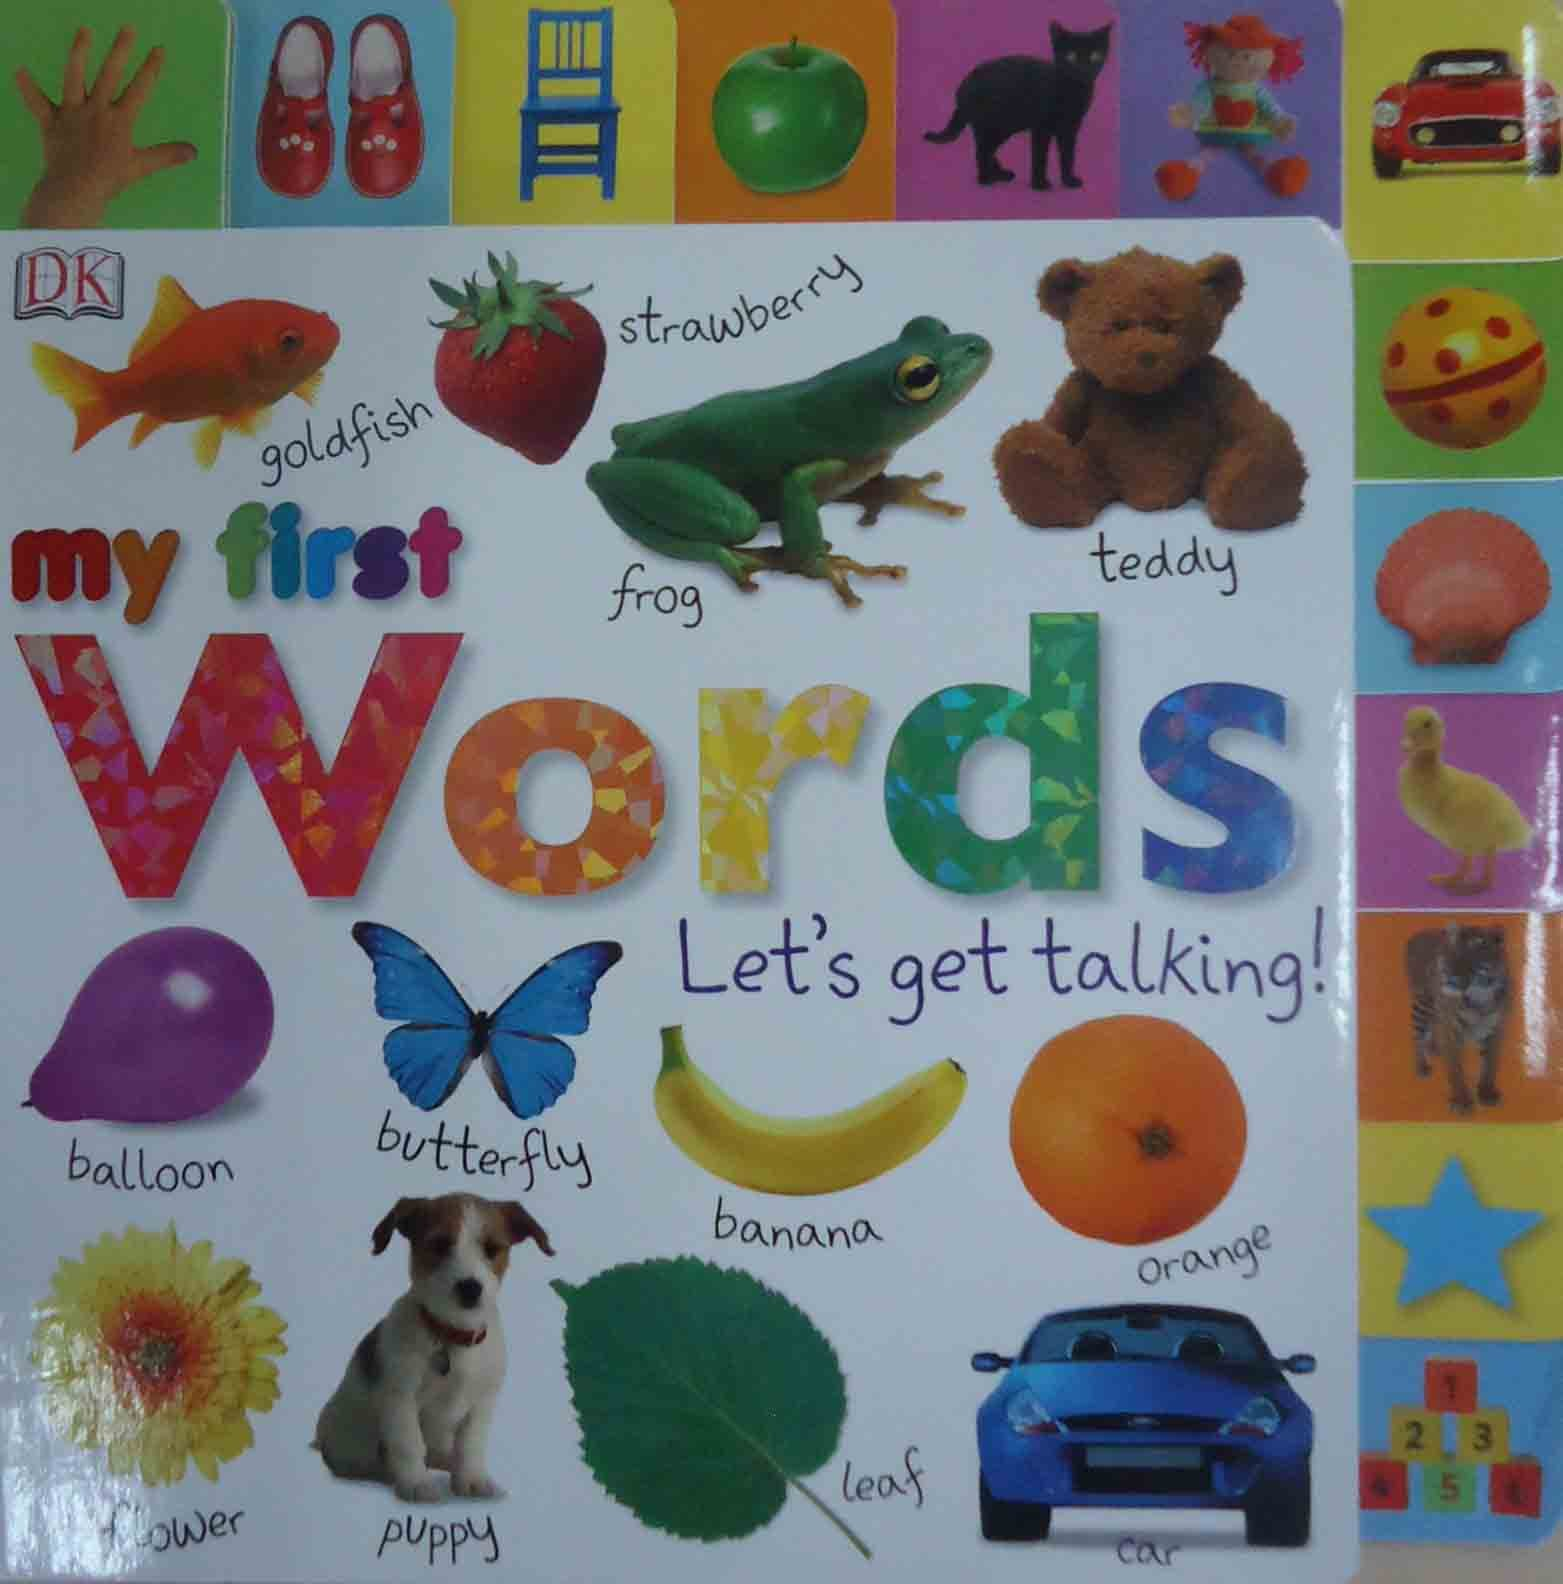 Tabbed board books my first words lets get talking tab board tabbed board books my first words lets get talking tab board books dk 9780756634315 amazon books fandeluxe Gallery